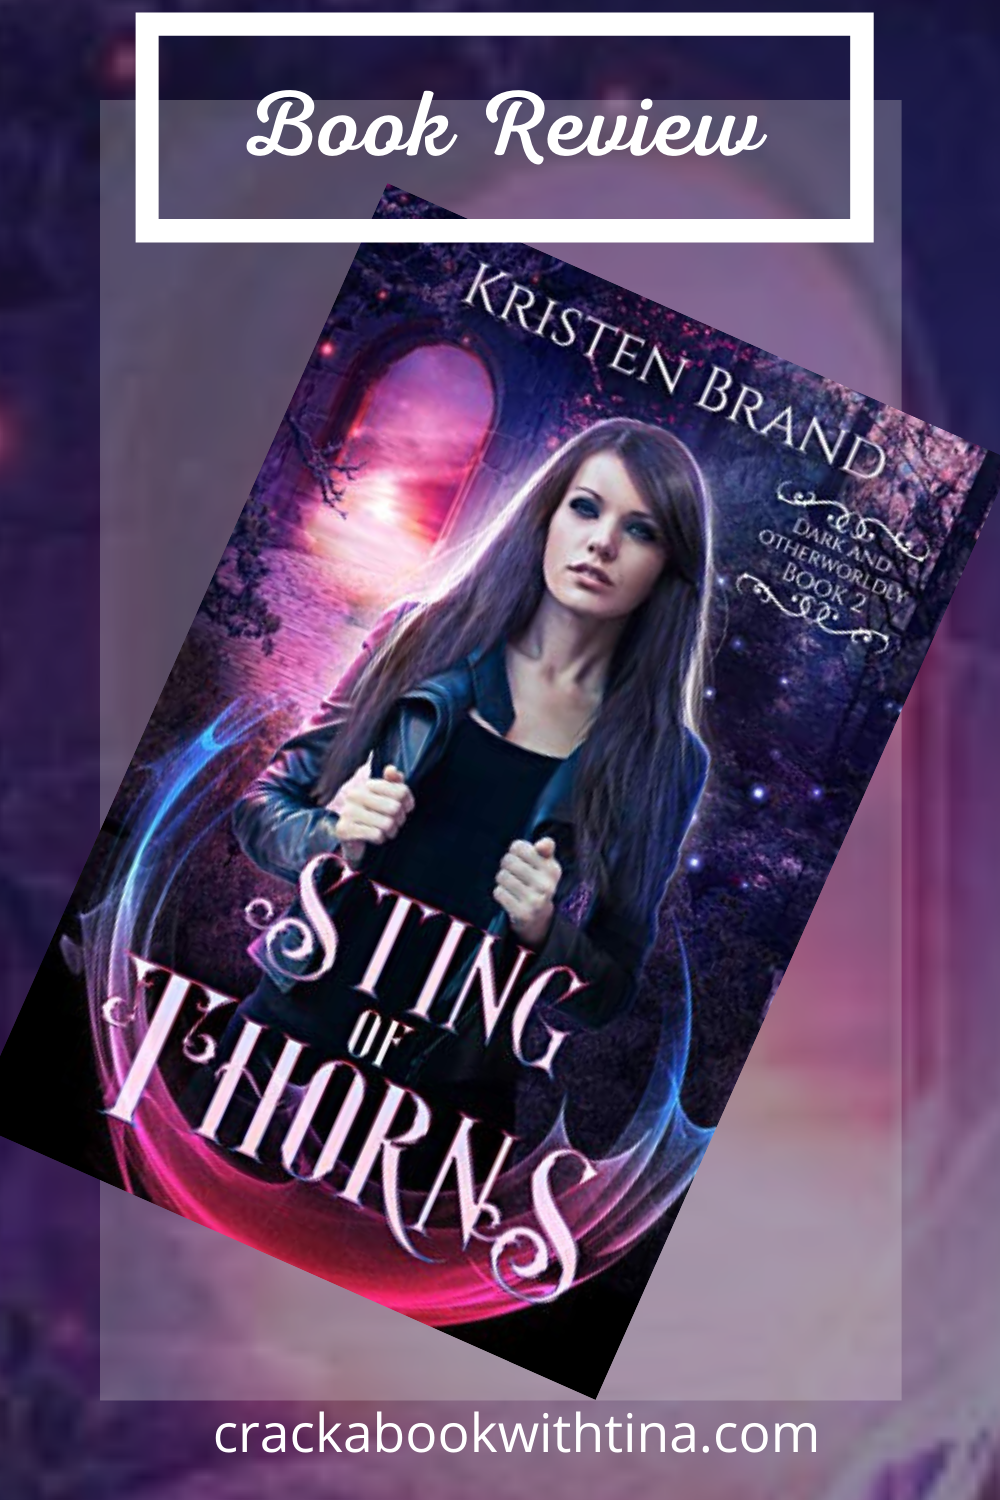 Sting of Thorns by Kristen Brand